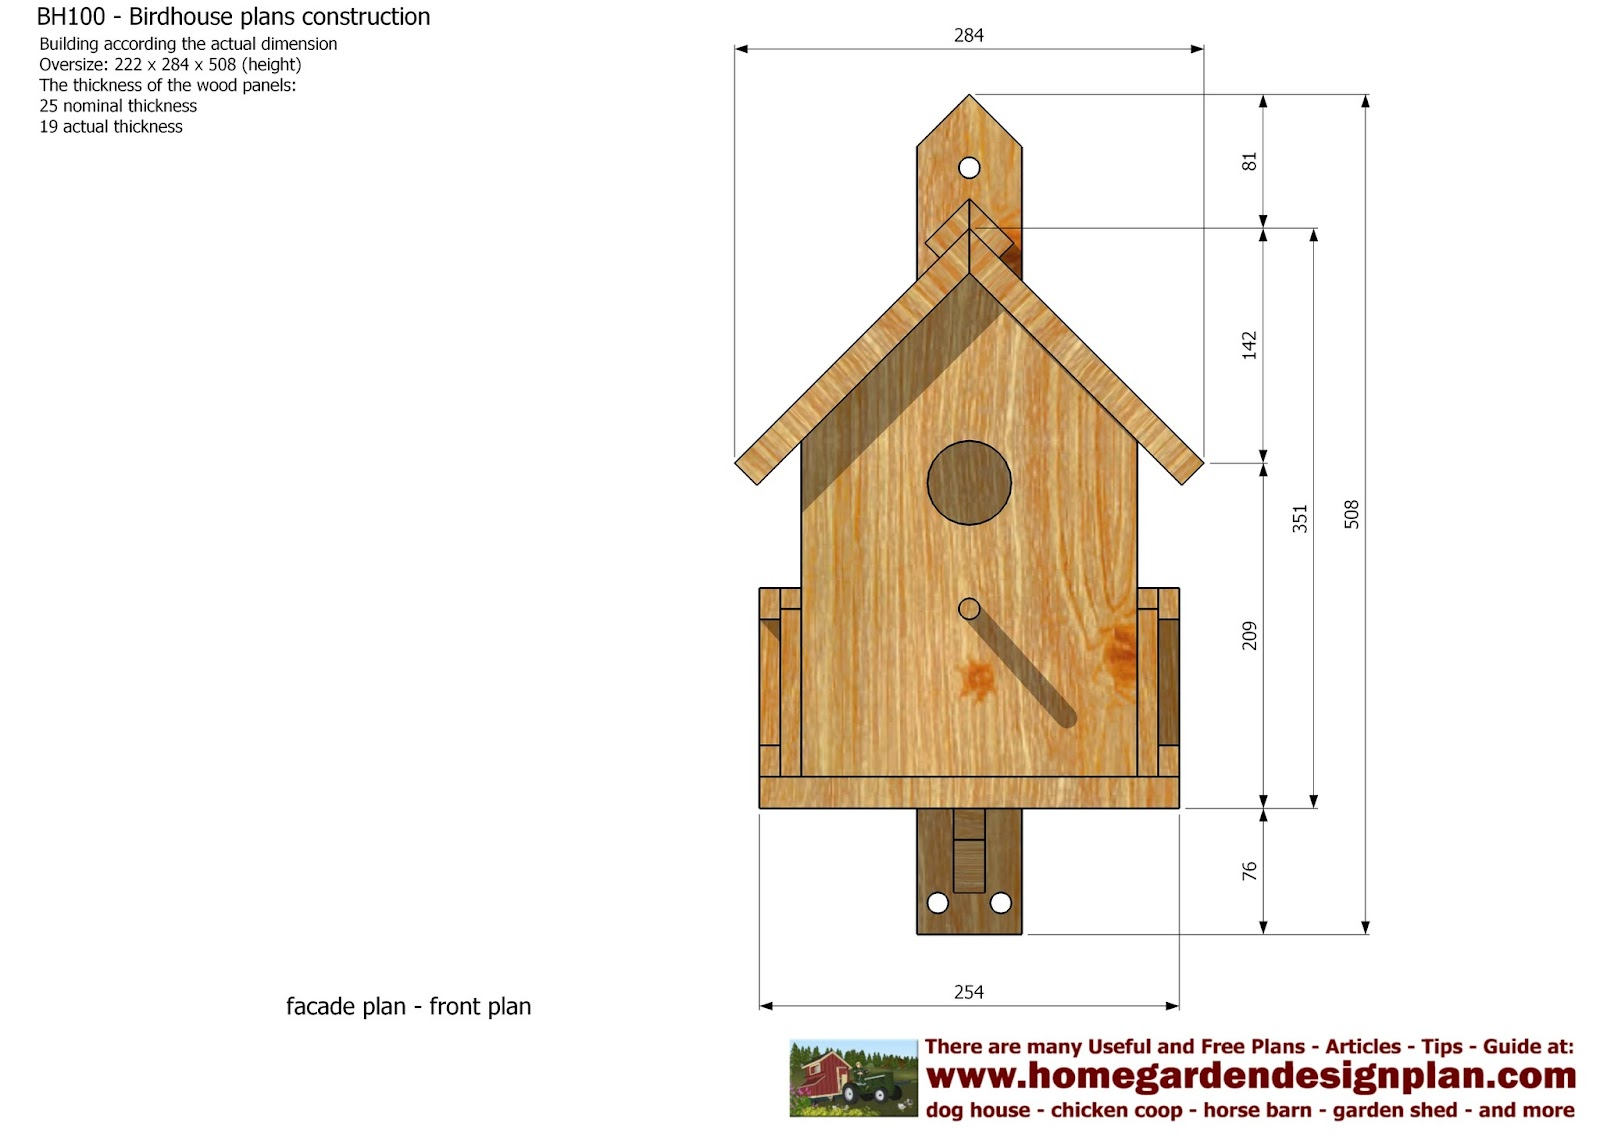 - Bird House Plans Construction - Bird House Design - How To Build ...